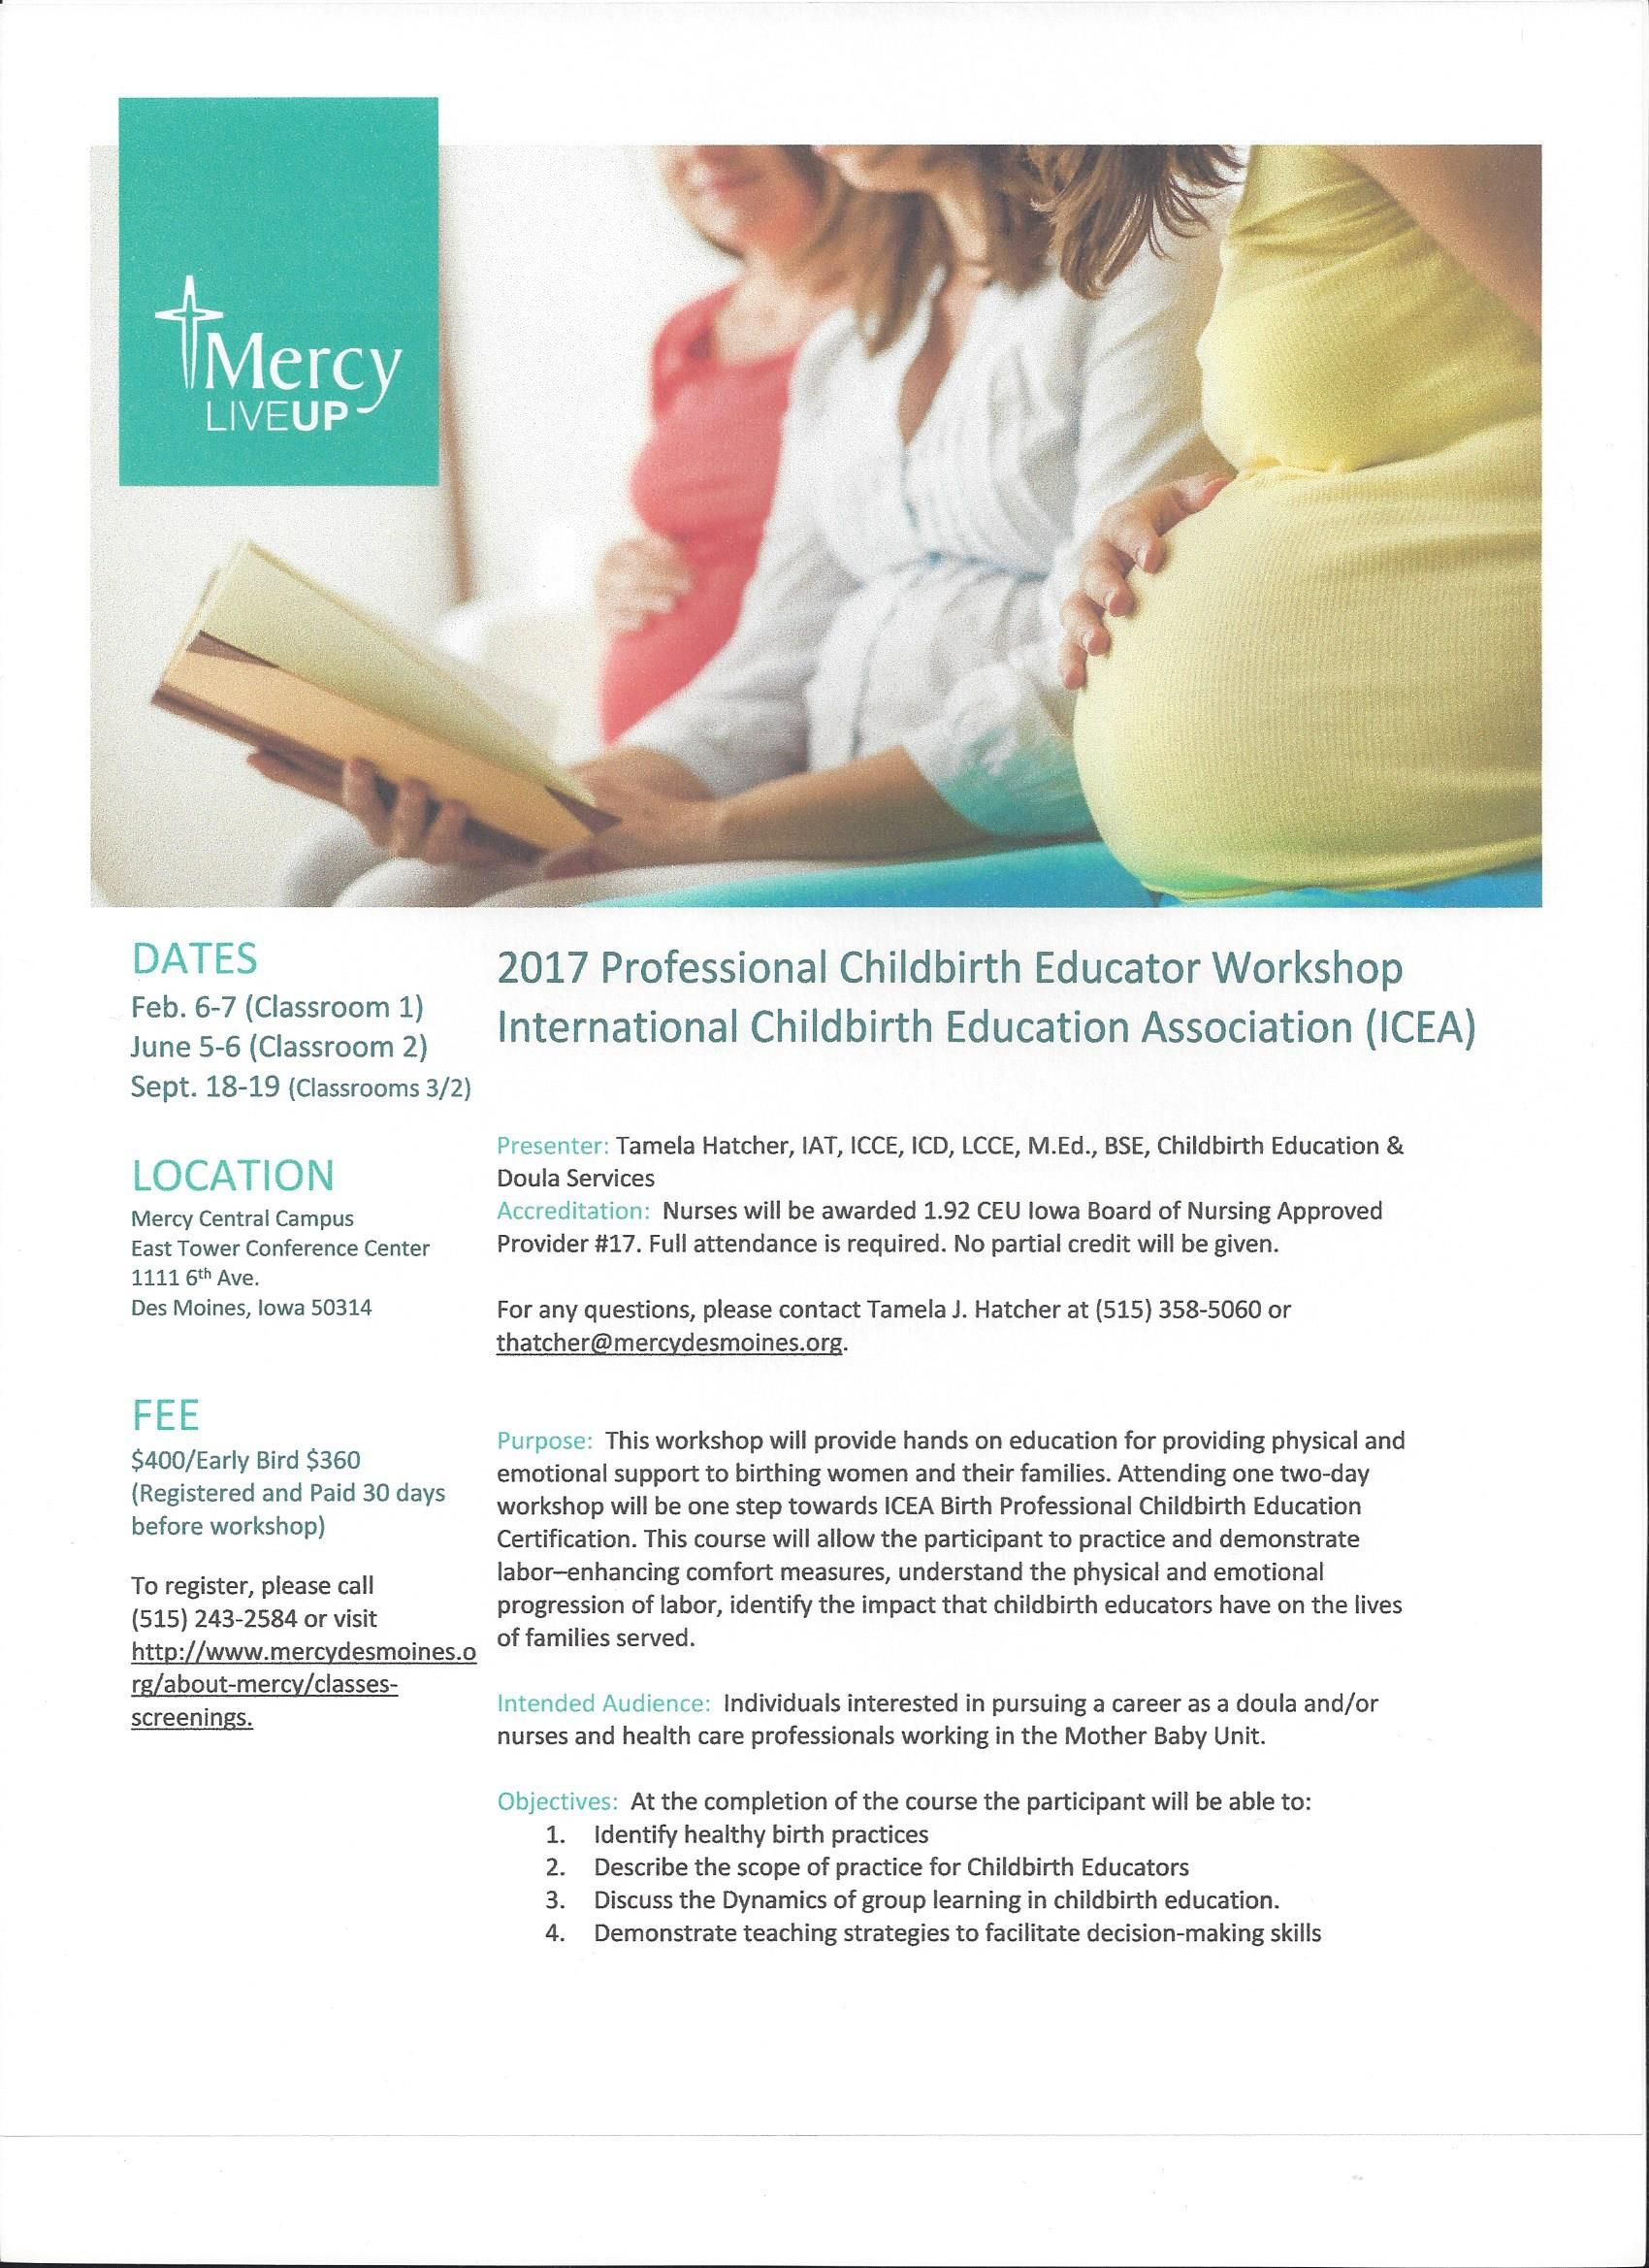 192 iowa board of nursing ceus provided completes requirements 192 iowa board of nursing ceus provided completes requirements for the international childbirth education association icea workshop certification xflitez Gallery